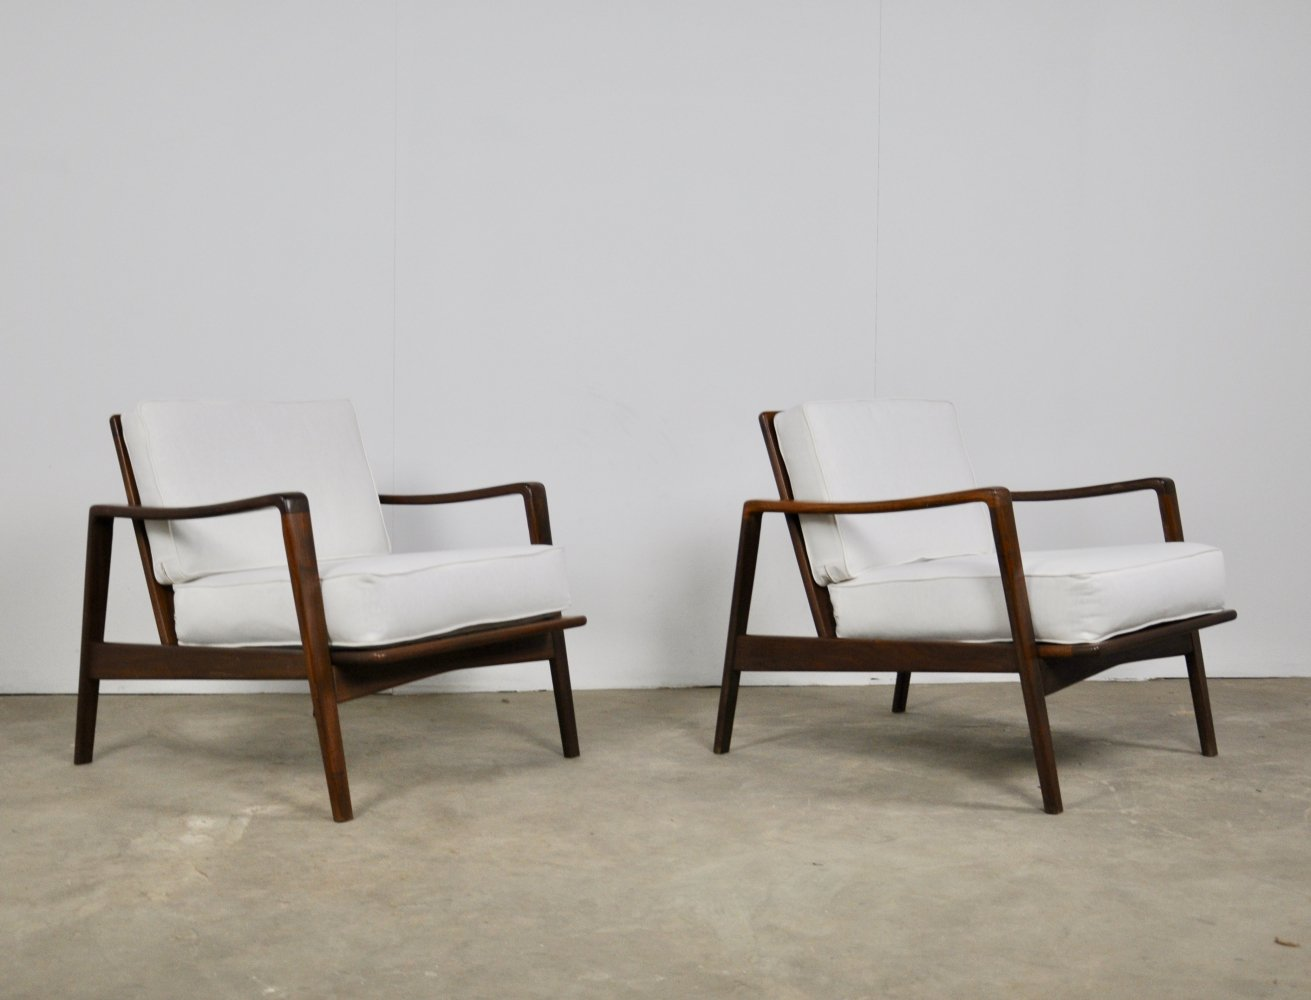 Pair of arm chairs by Arne Wahl Iversen for Komfort, 1960s